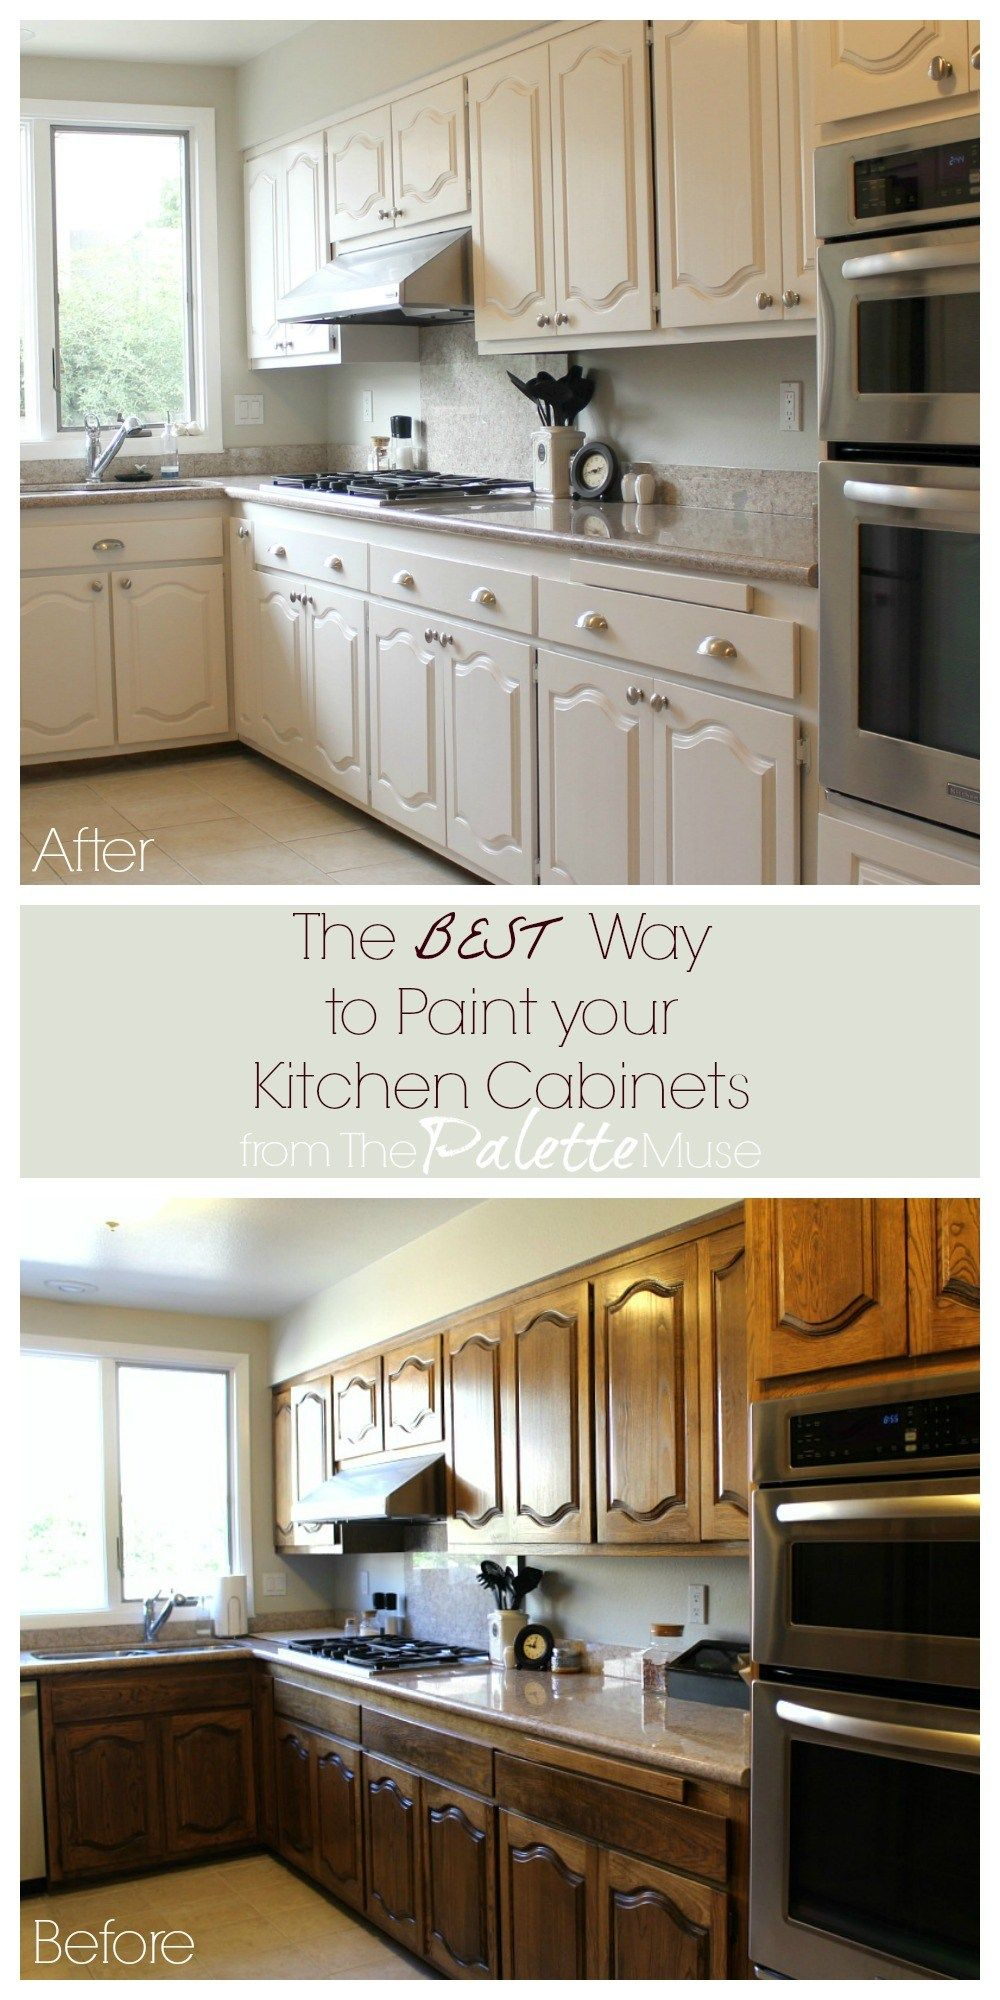 The Best Way To Paint Kitchen Cabi S Satin Kitchens And House ...